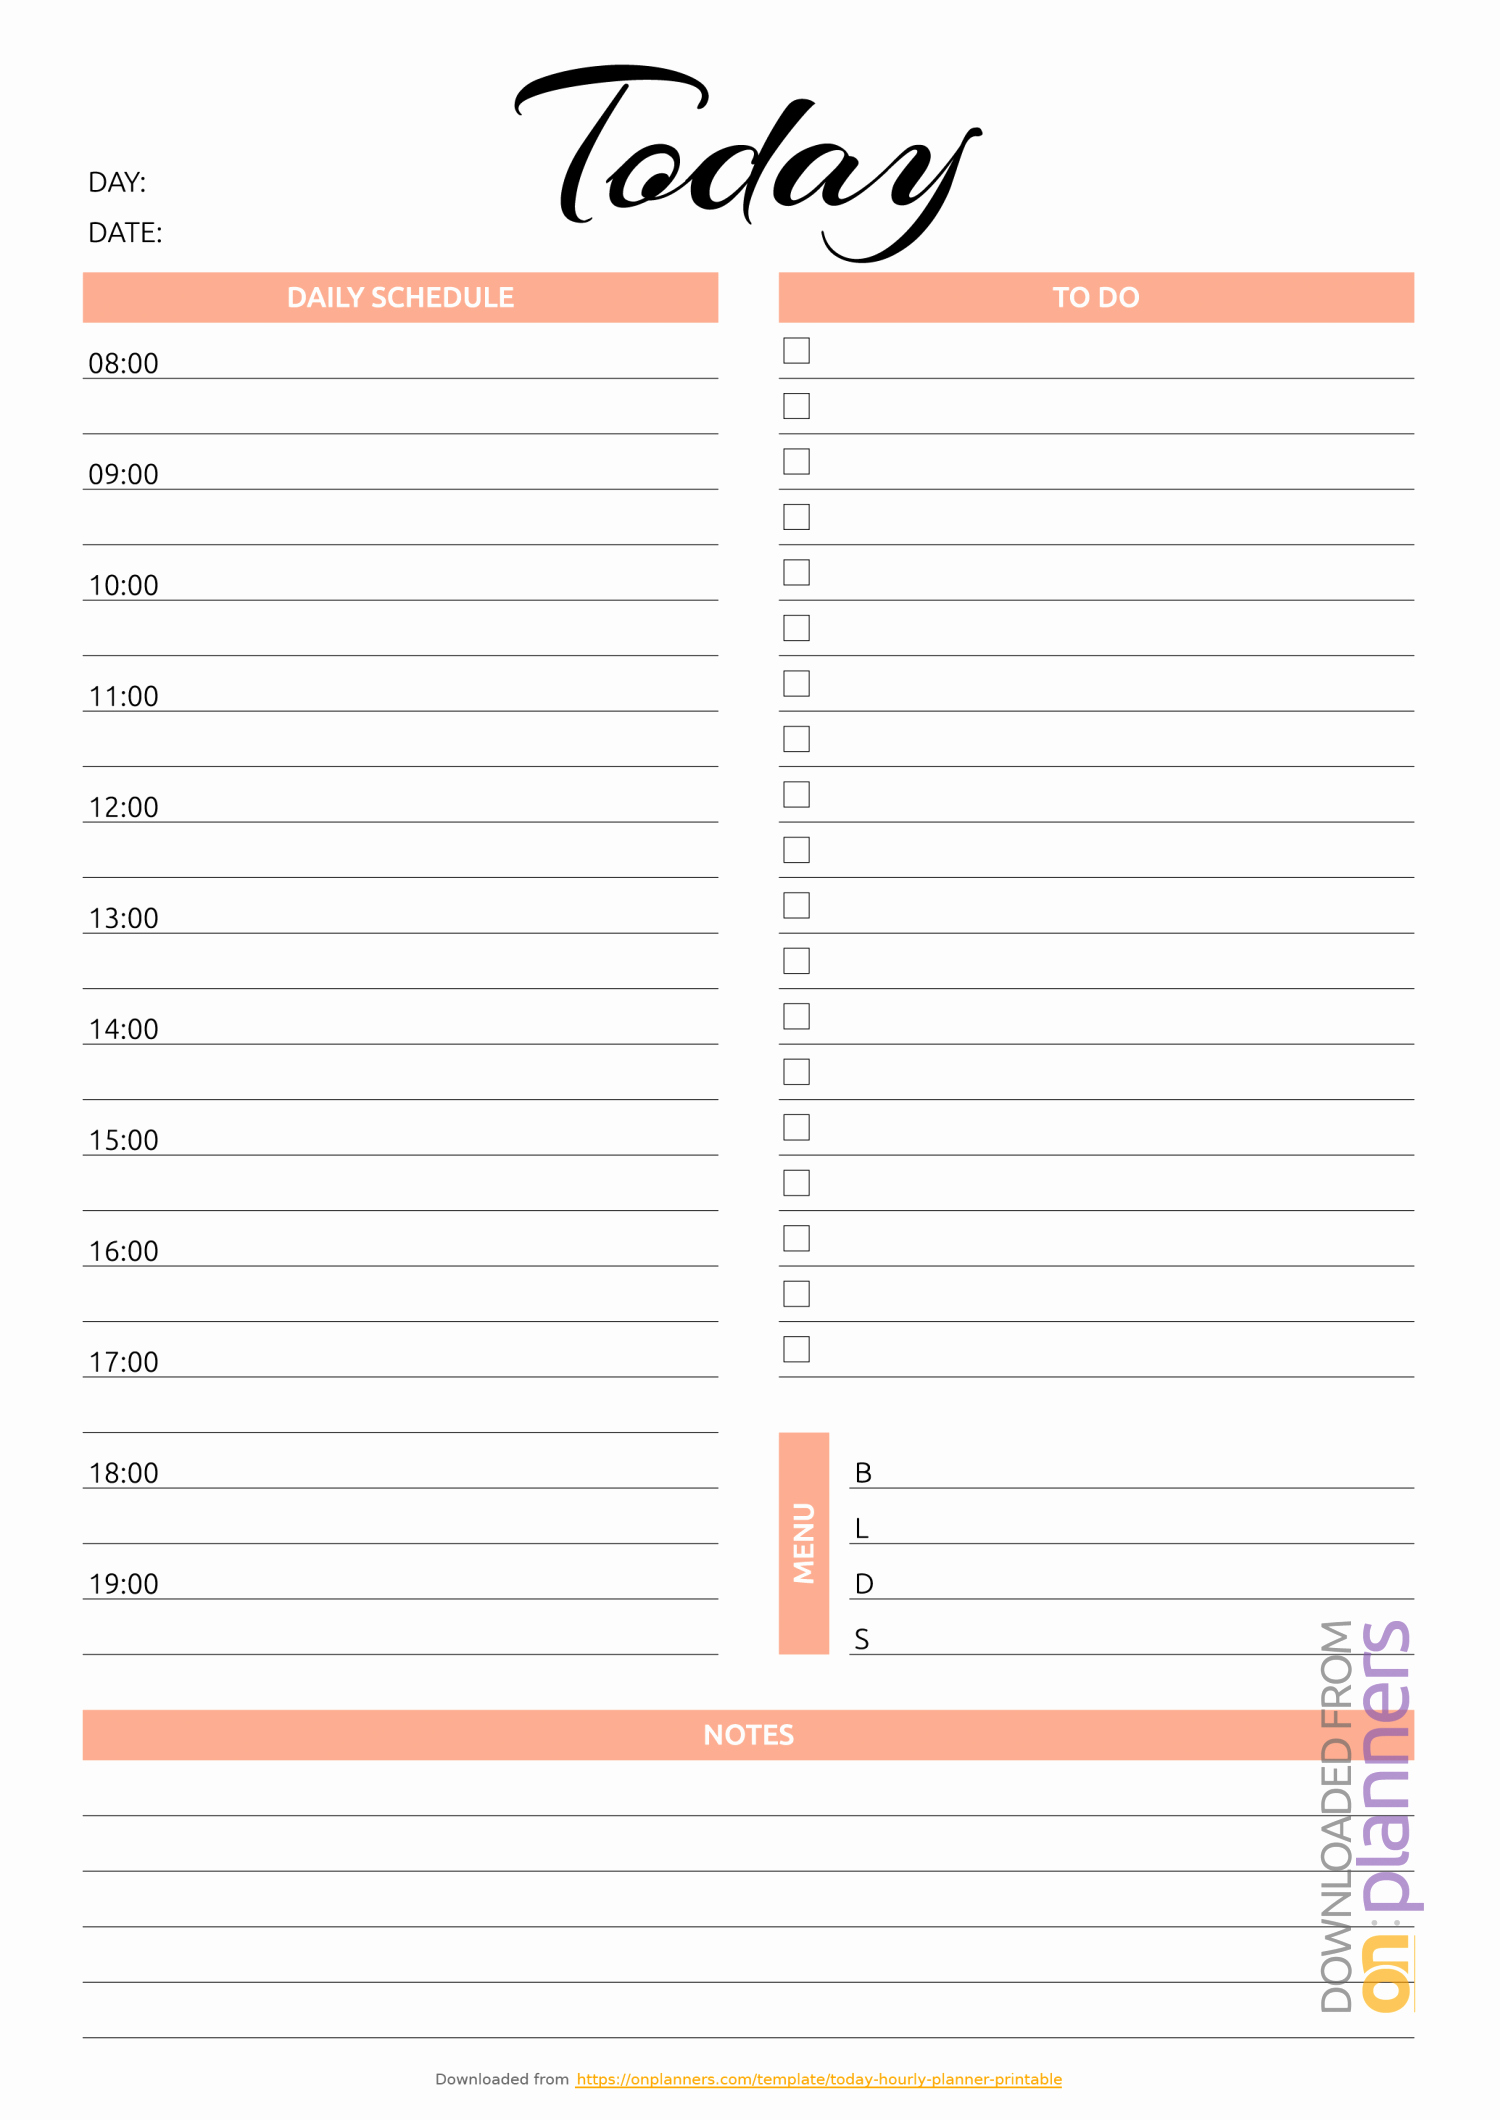 Daily Planner Printable Template Elegant Daily Planner Templates Printable